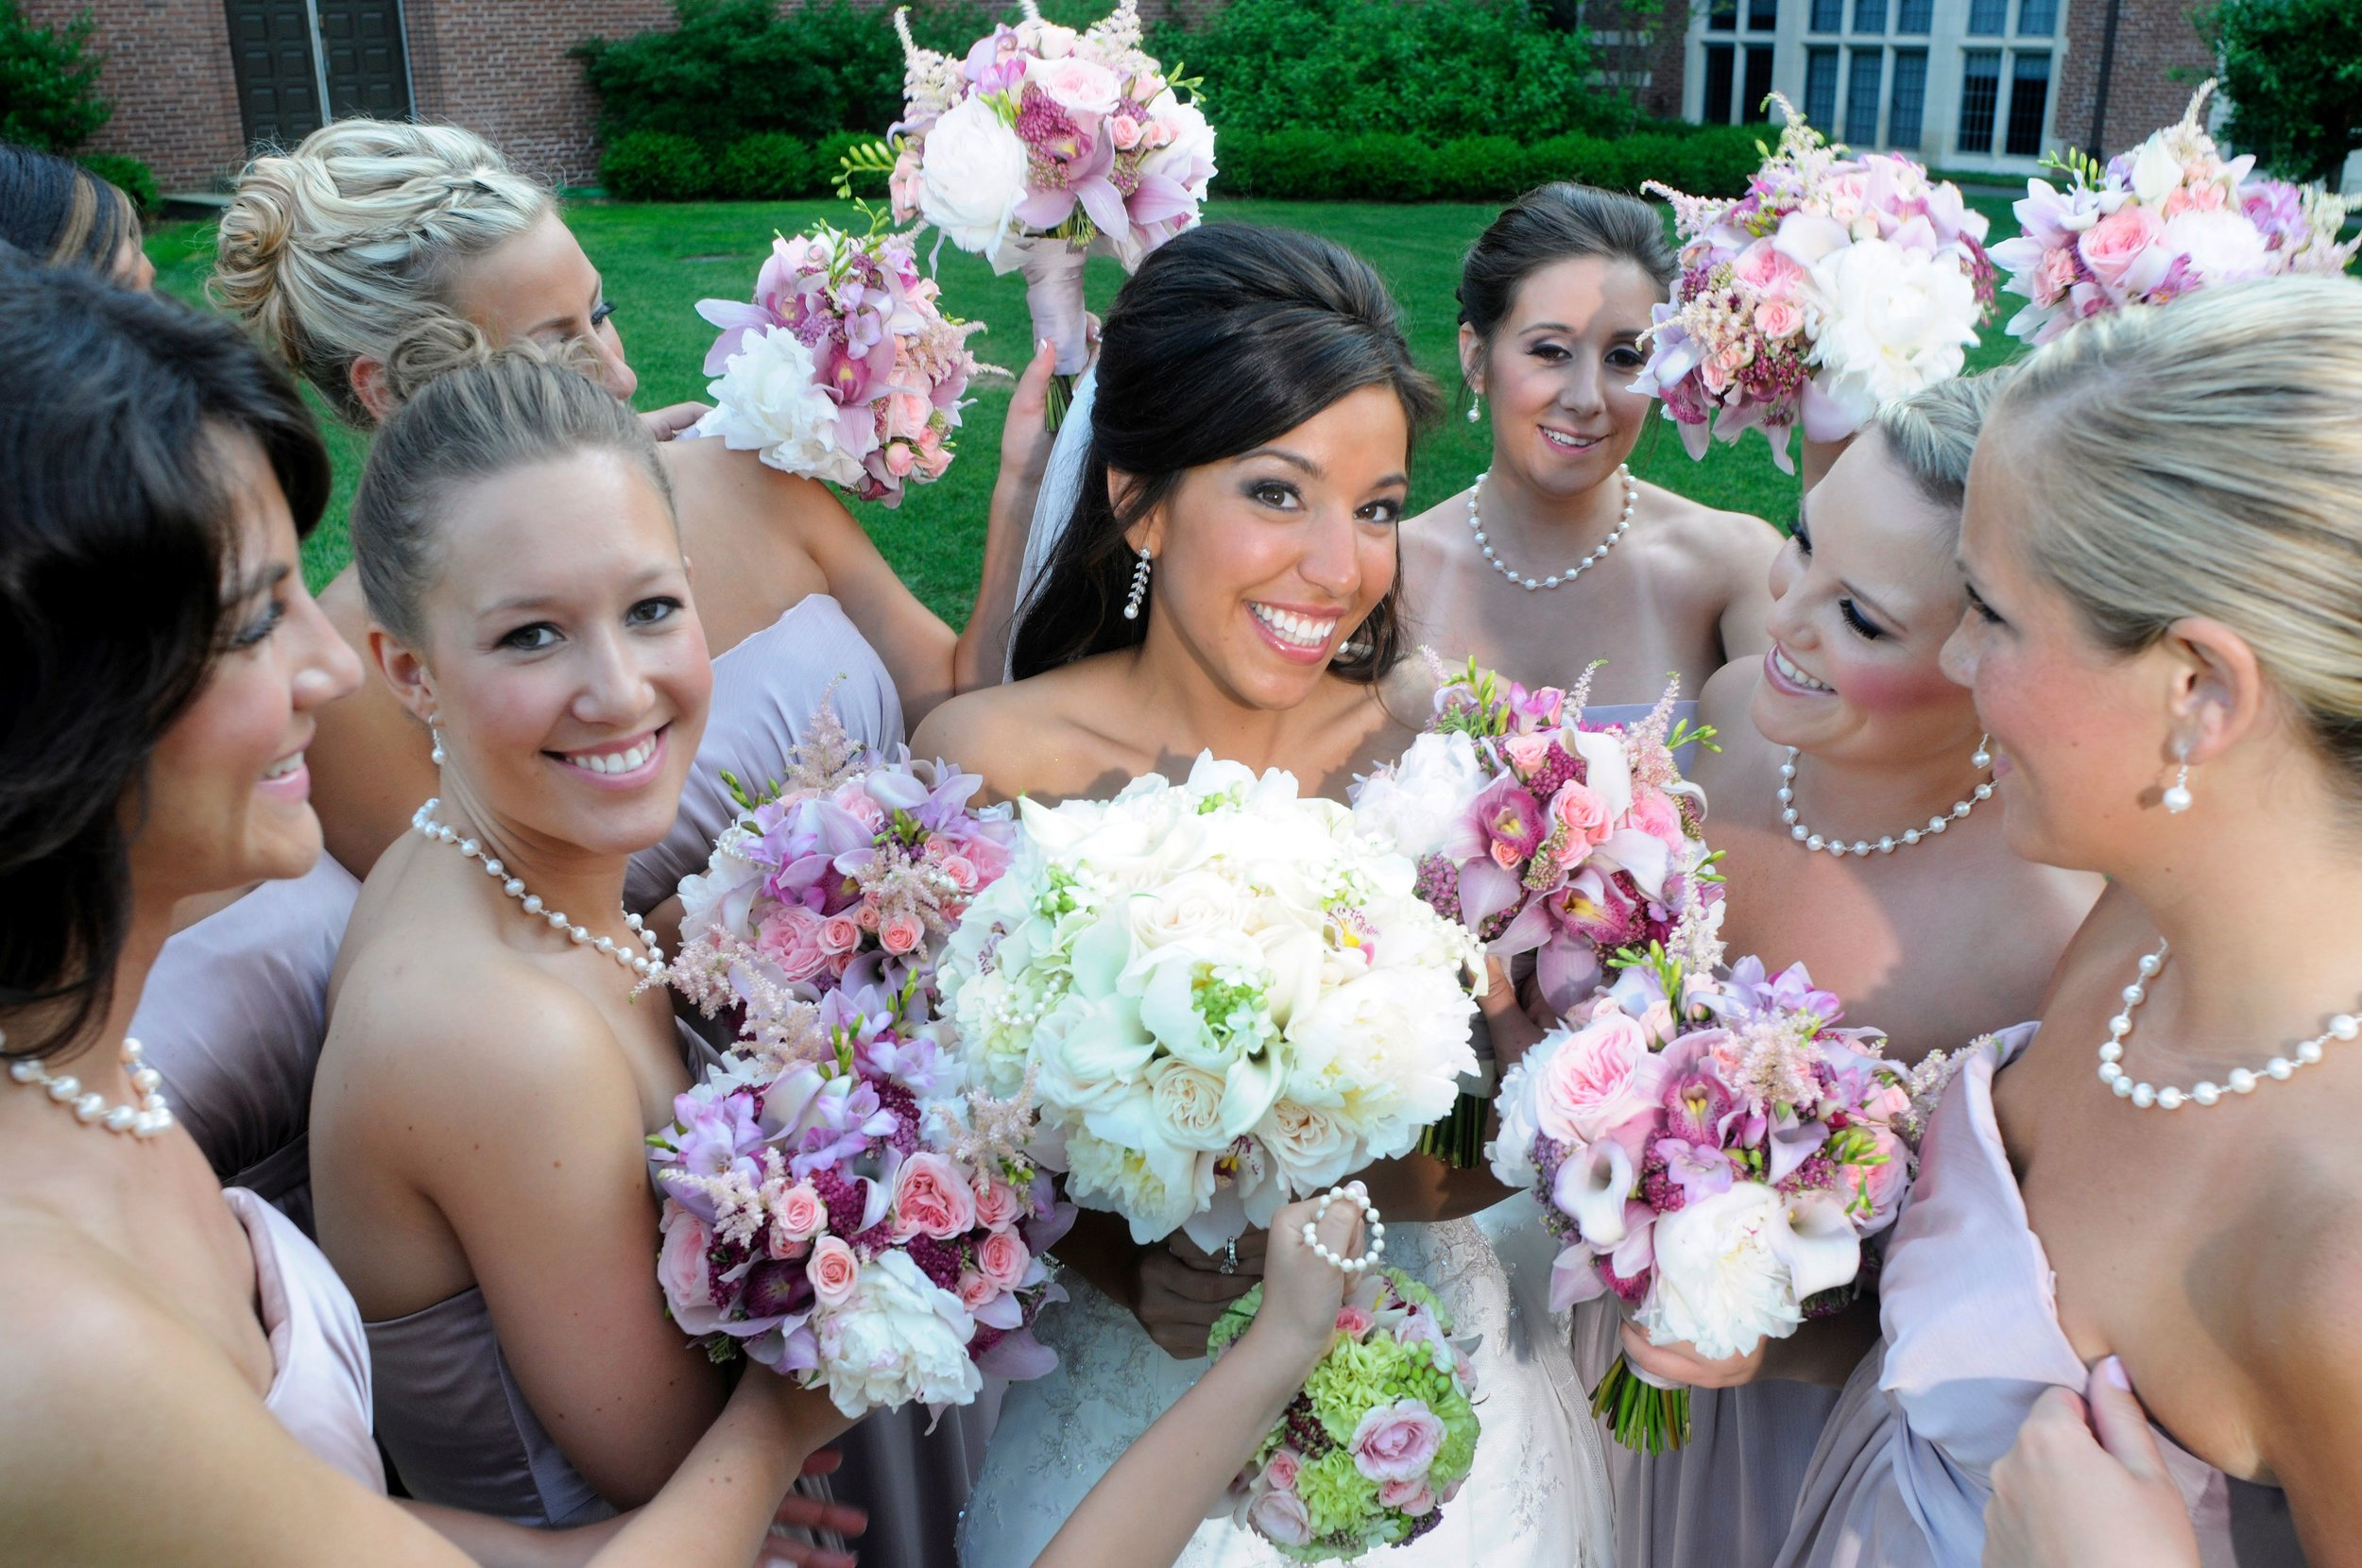 Bride holds up white bouquet of flowers while pink flowers